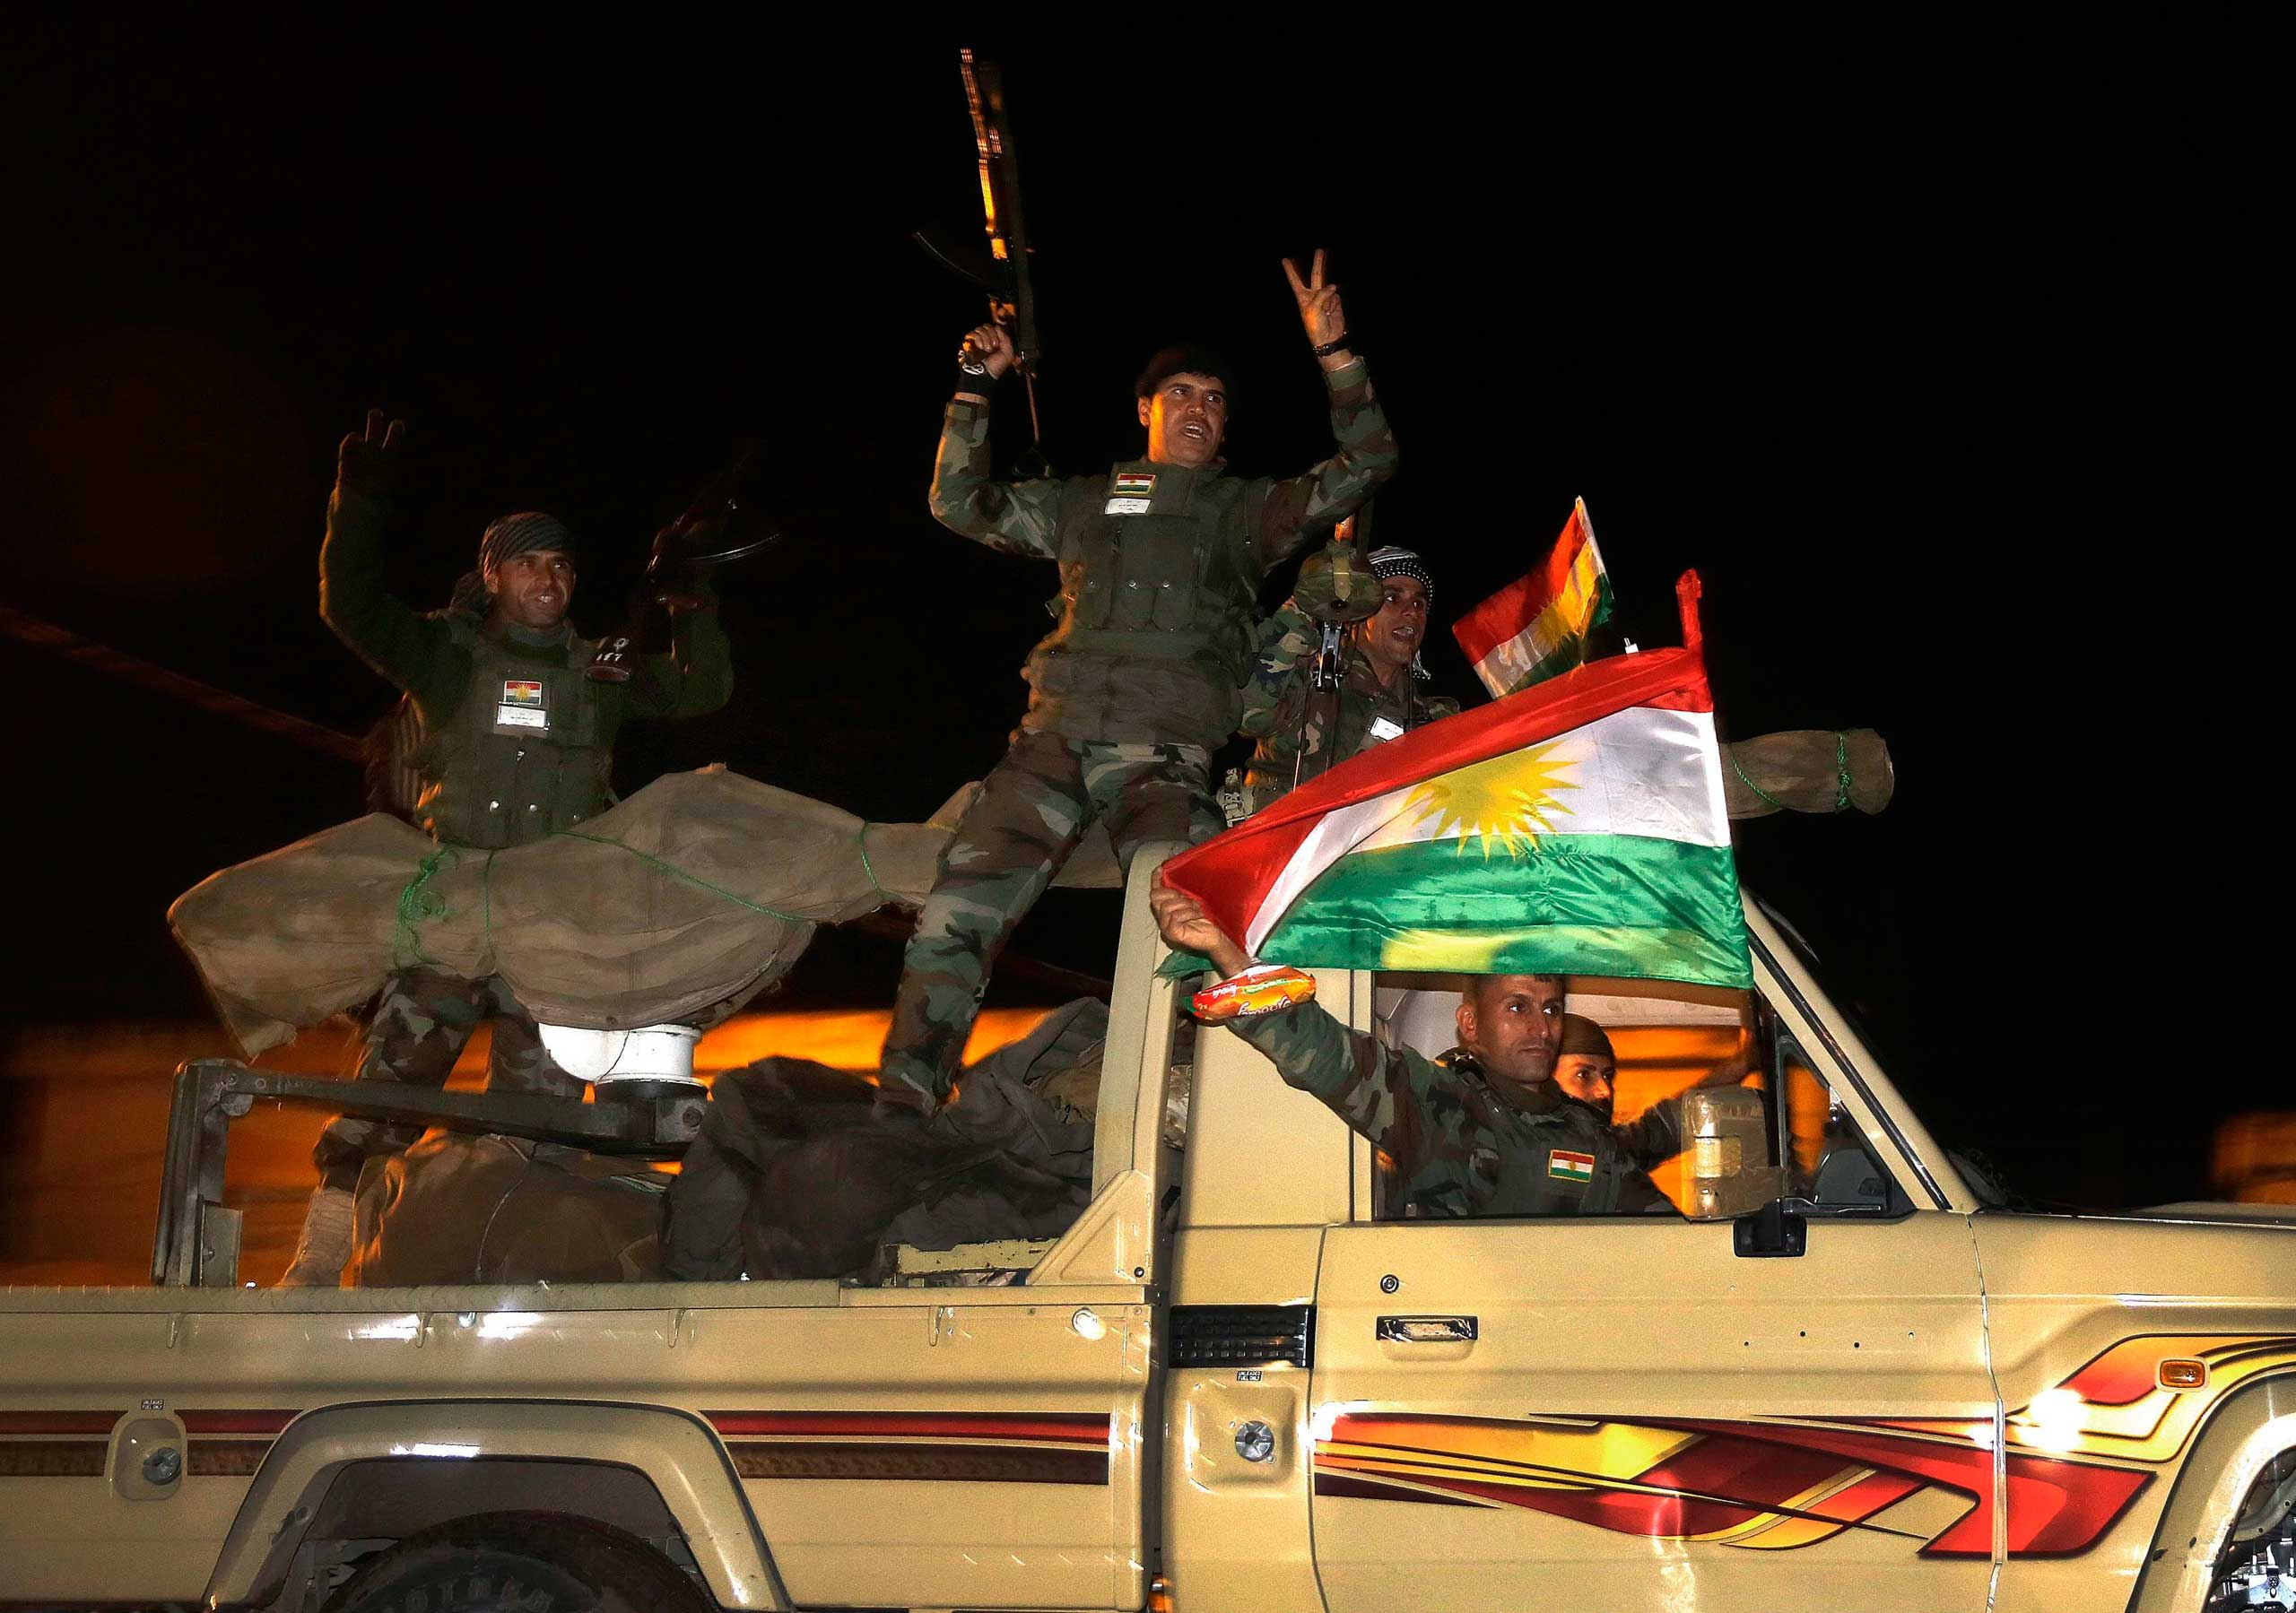 Kurdish peshmerga fighters wave Kurdish flags atop an army vehicle as they move towards the Syrian town of Kobani  from the border town of Suruc, Sanliurfa province, Oct. 31, 2014.